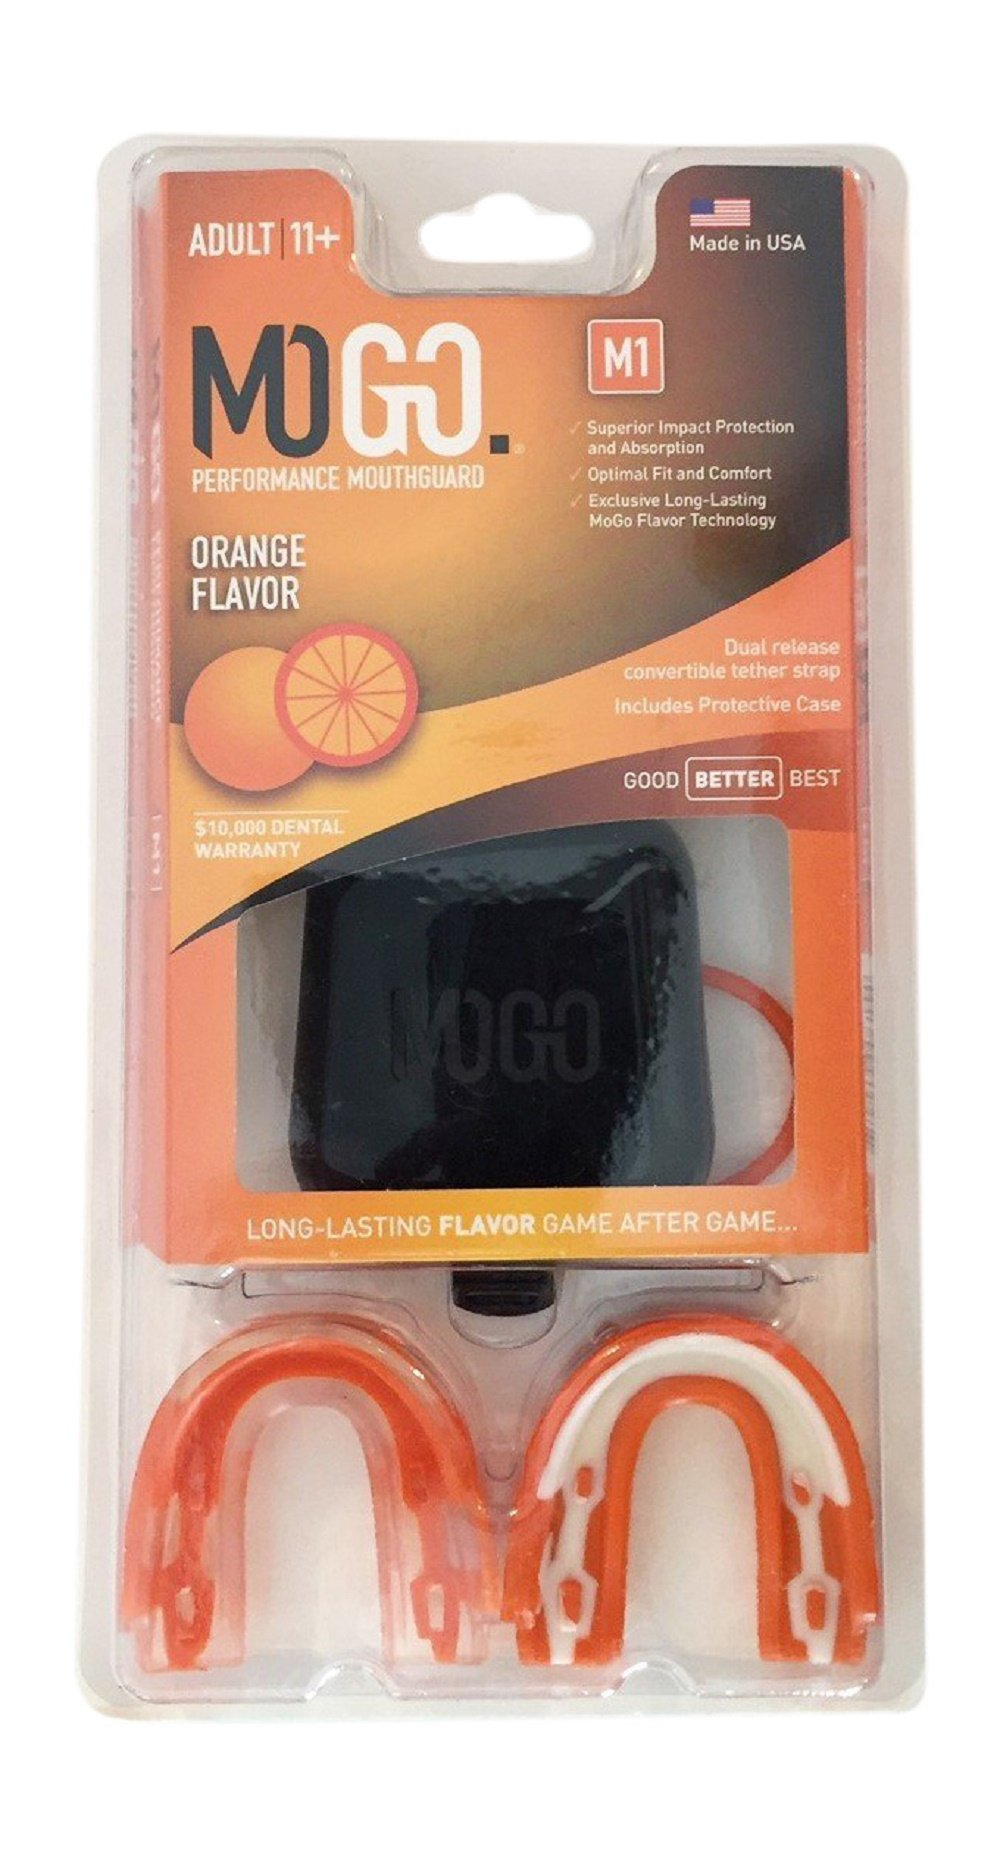 MOGO. Flavored 2 Pack Mouth Guards - Adult Sports Mouthguard for Ages 11 and Up - Mouthpiece for MMA, Football and Lacrosse - Tether Strap, Fitting Instructions and Carry Case (Orange)